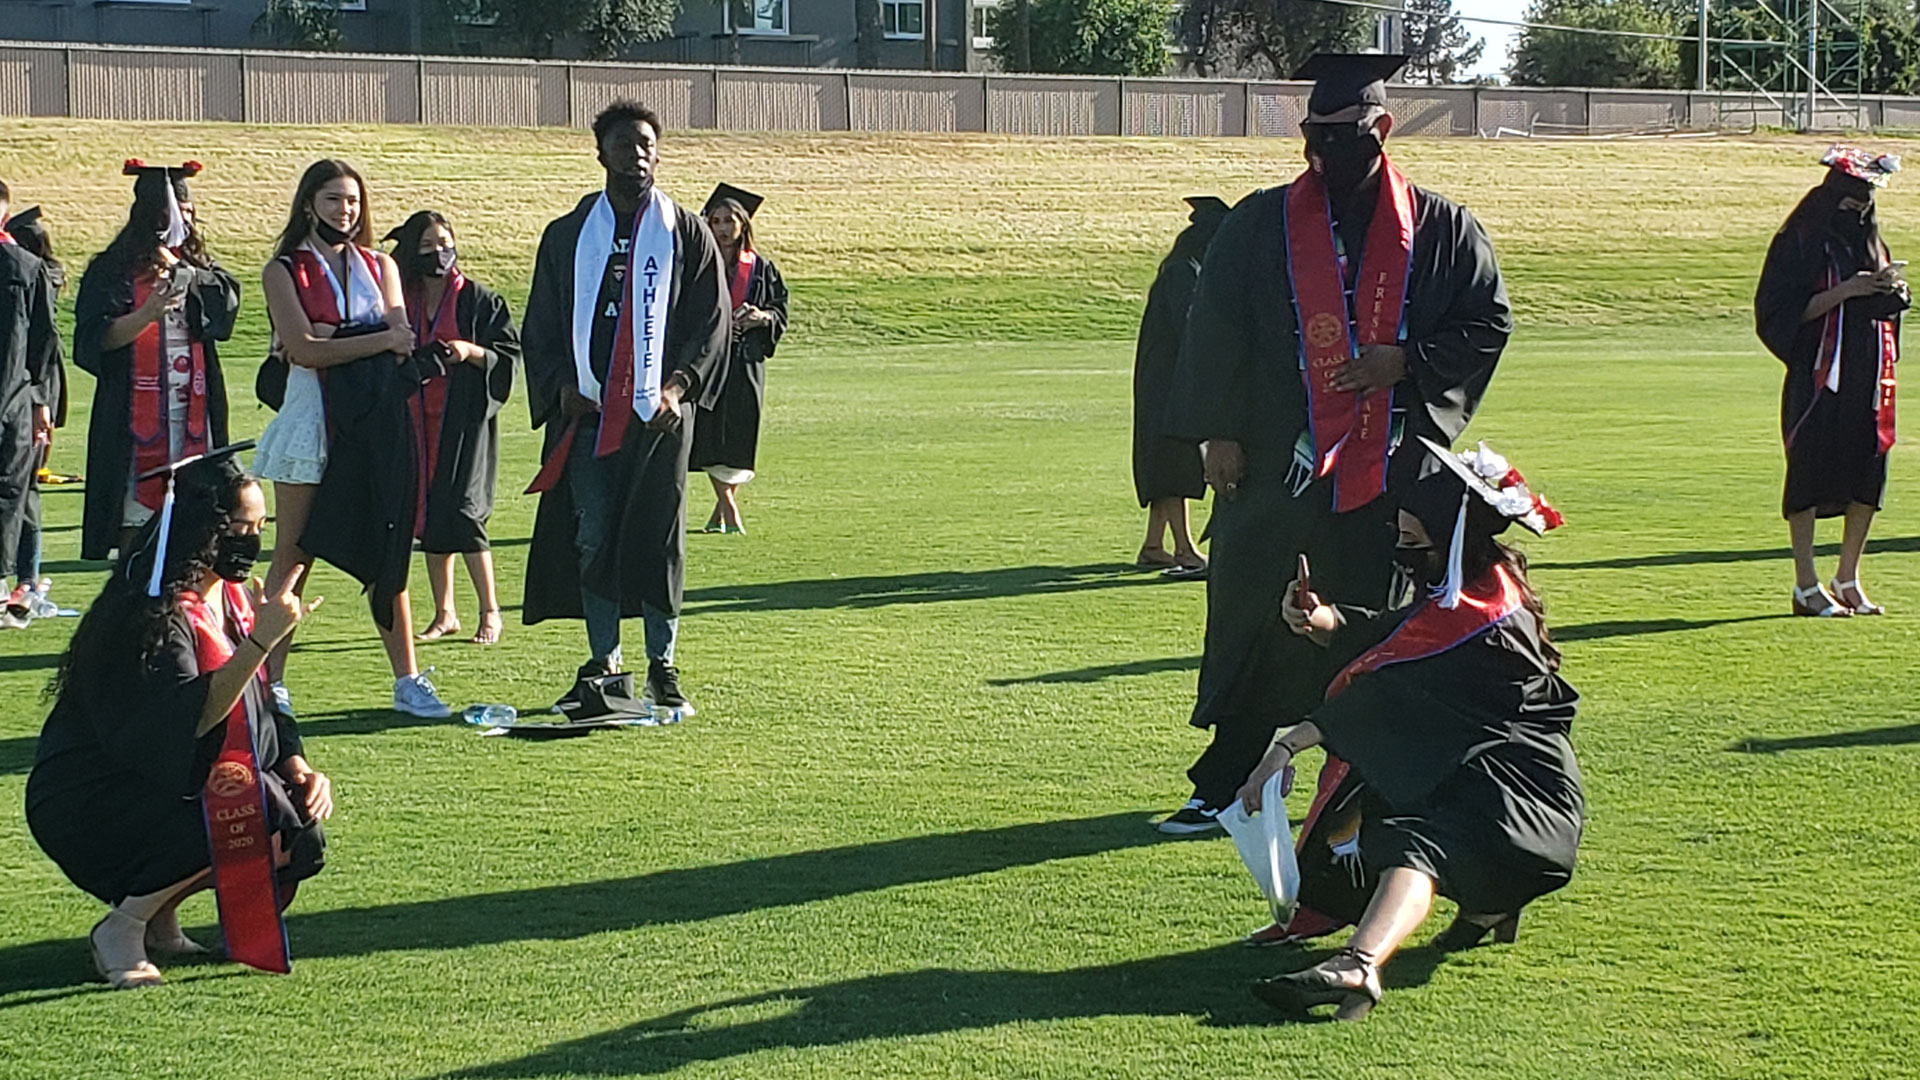 Grads pose for pictures ahead of the ceremony.